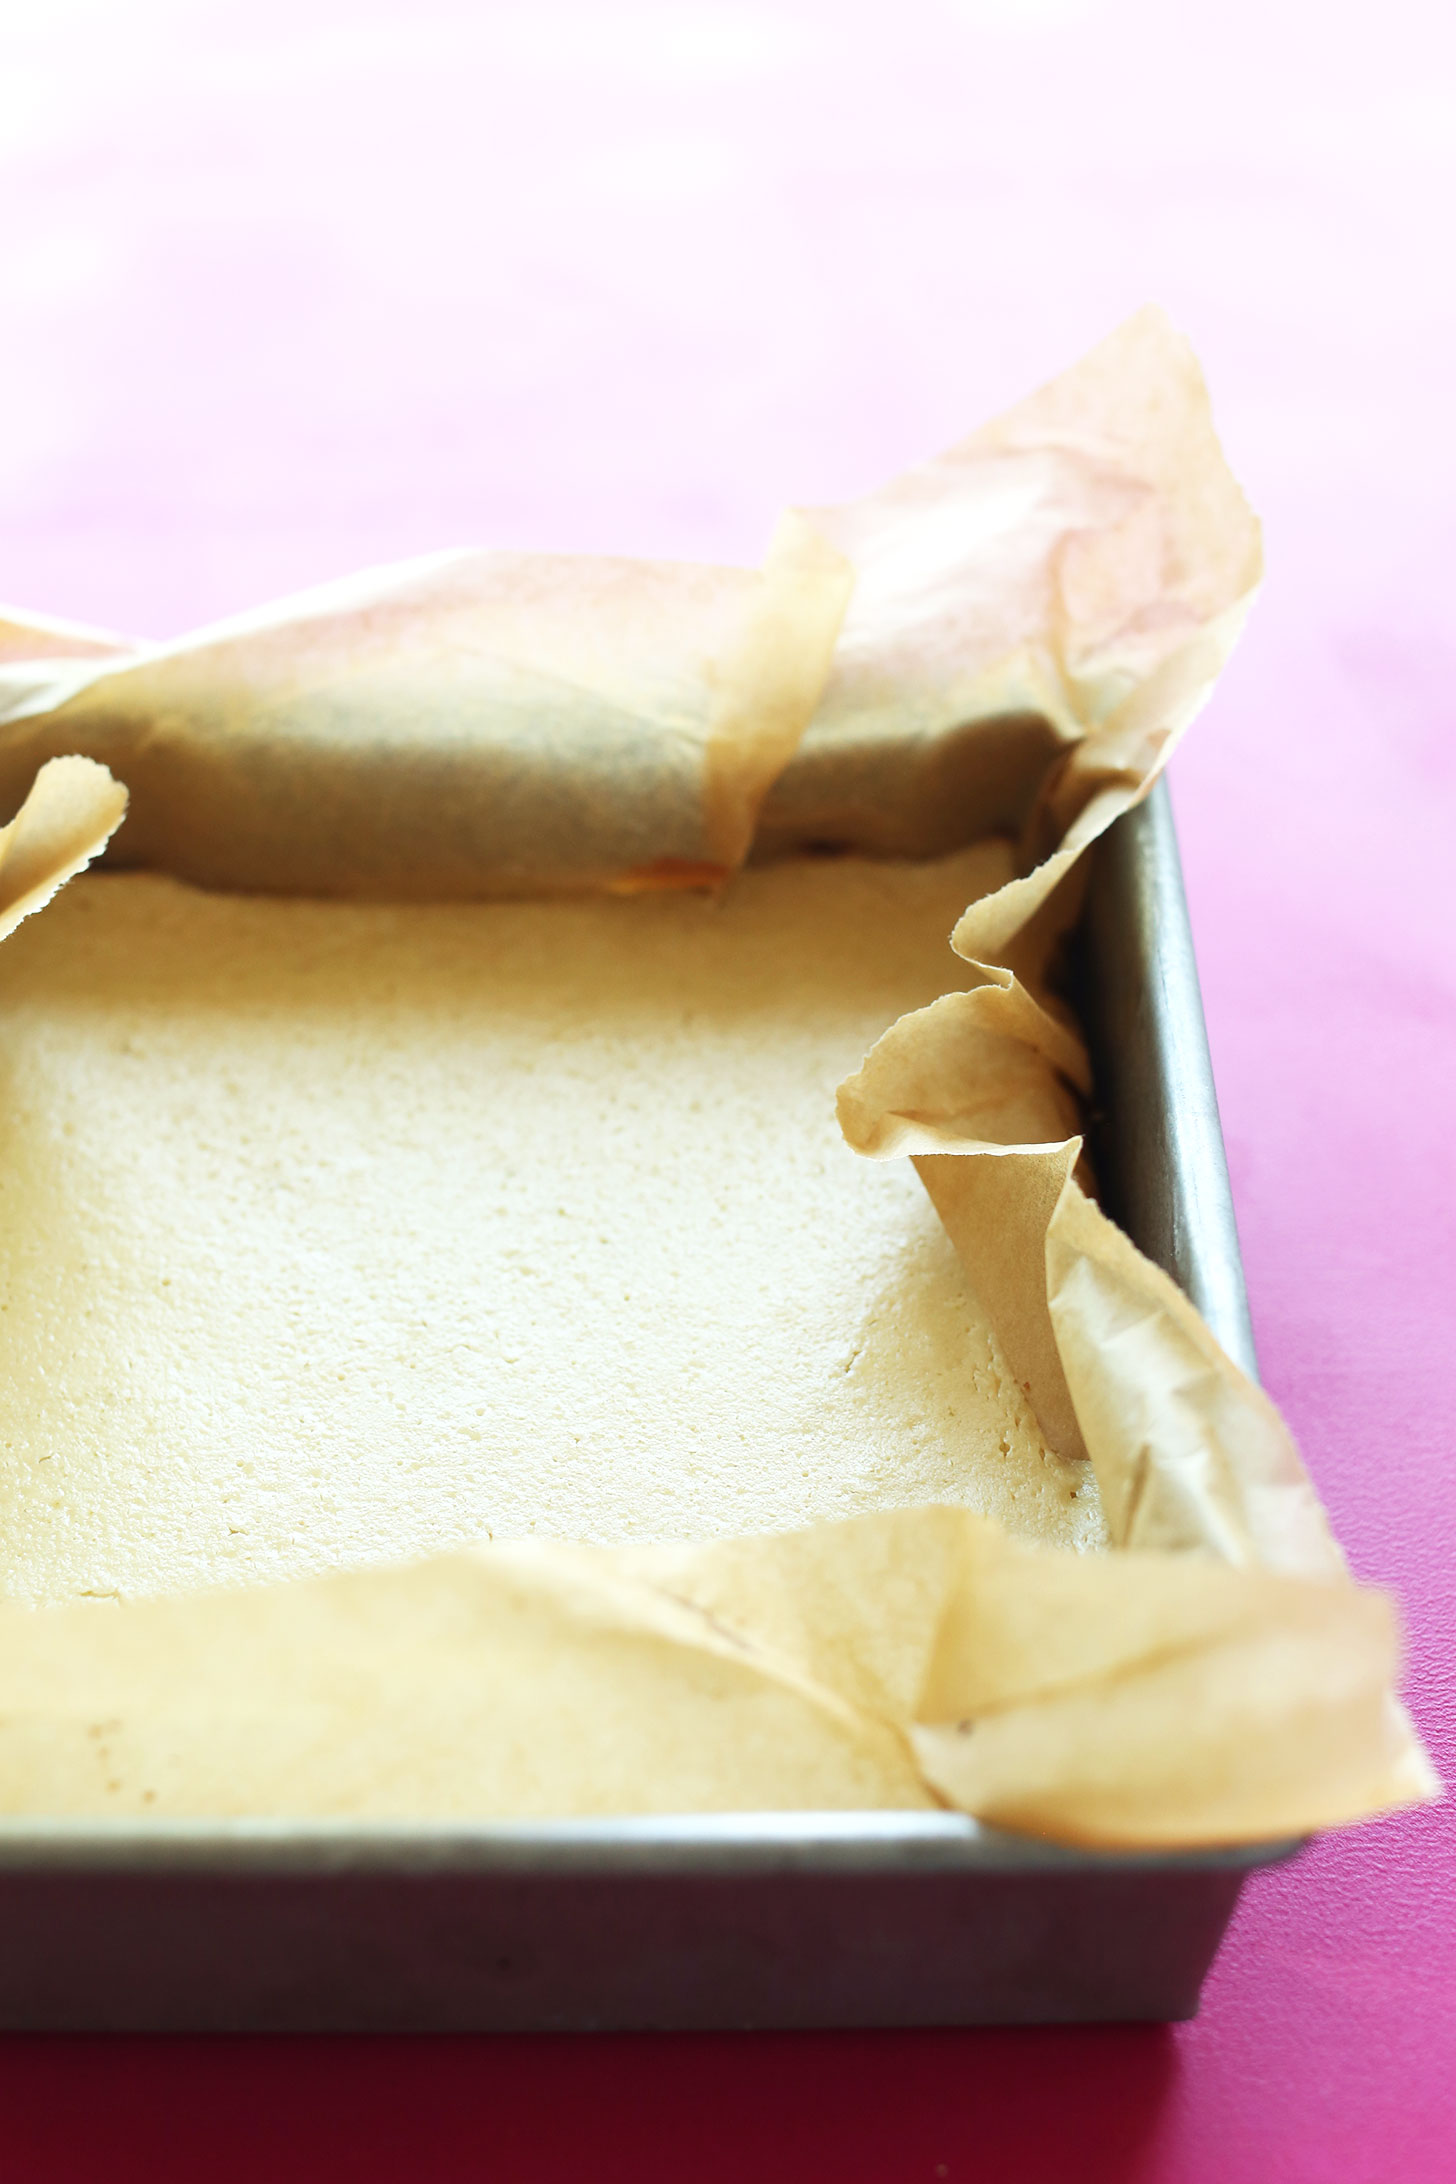 Parchment-lined baking pan filled with our gluten-free vegan Key Lime Pie Bars recipe